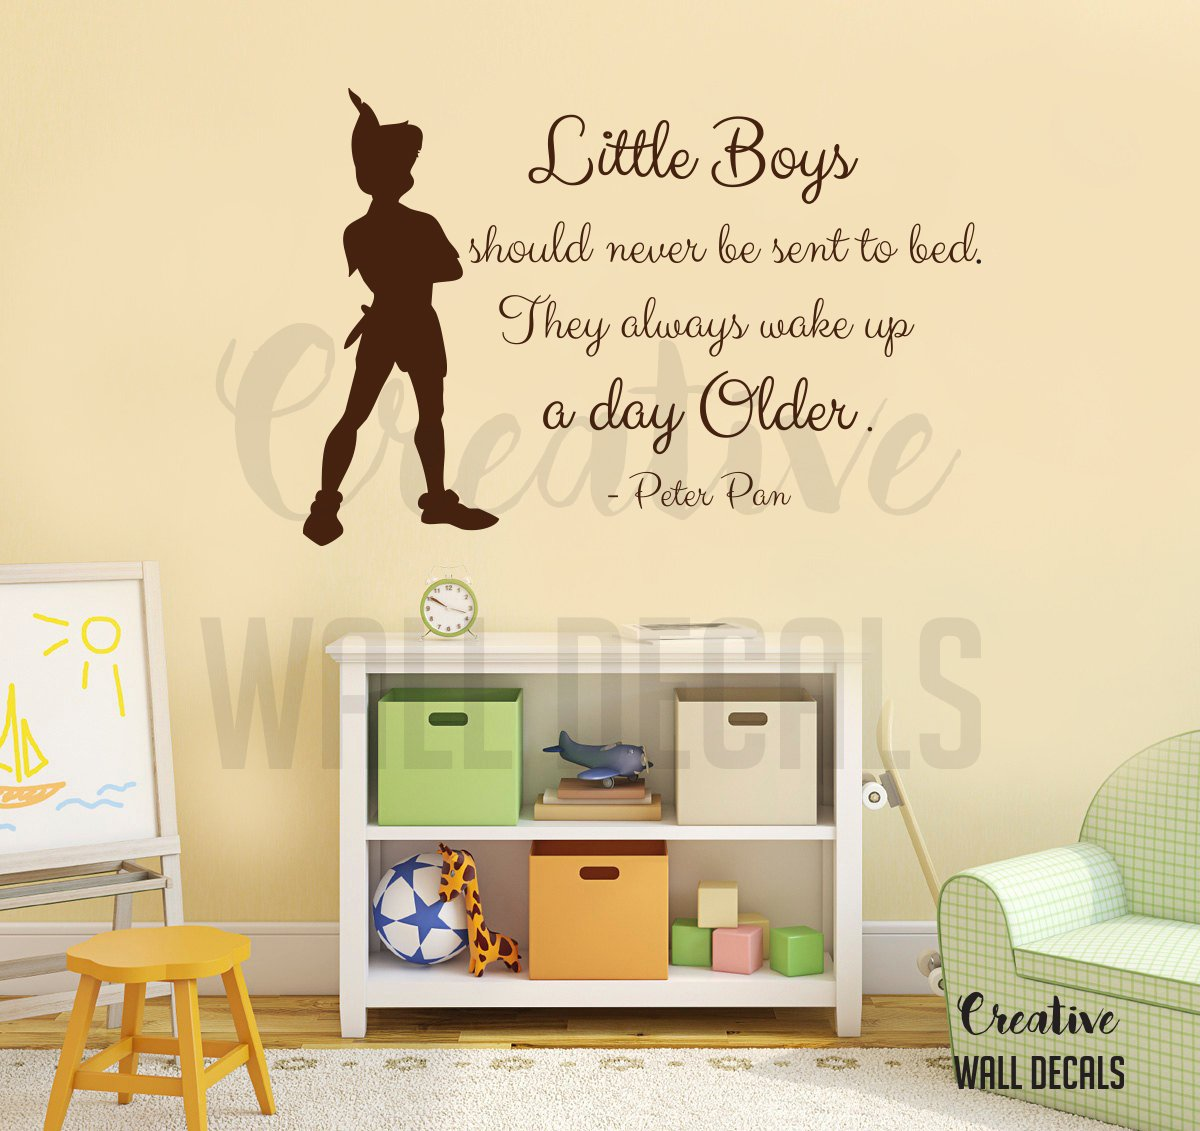 Vinyl Wall Decal Sticker Peter Pan Quote Little Boys Nursery Baby Bedroom r1899 by CreativeWallDecals